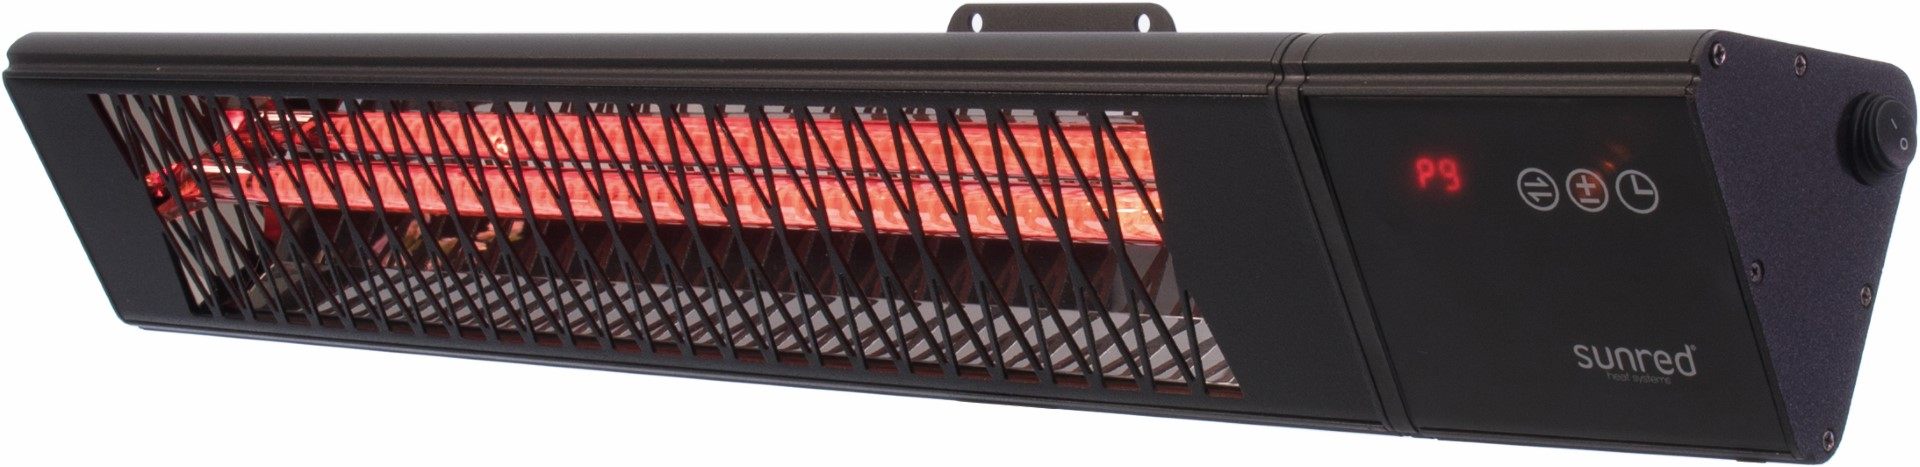 Sunred Royal Diamond Dark 2500 Professional Smart Heater